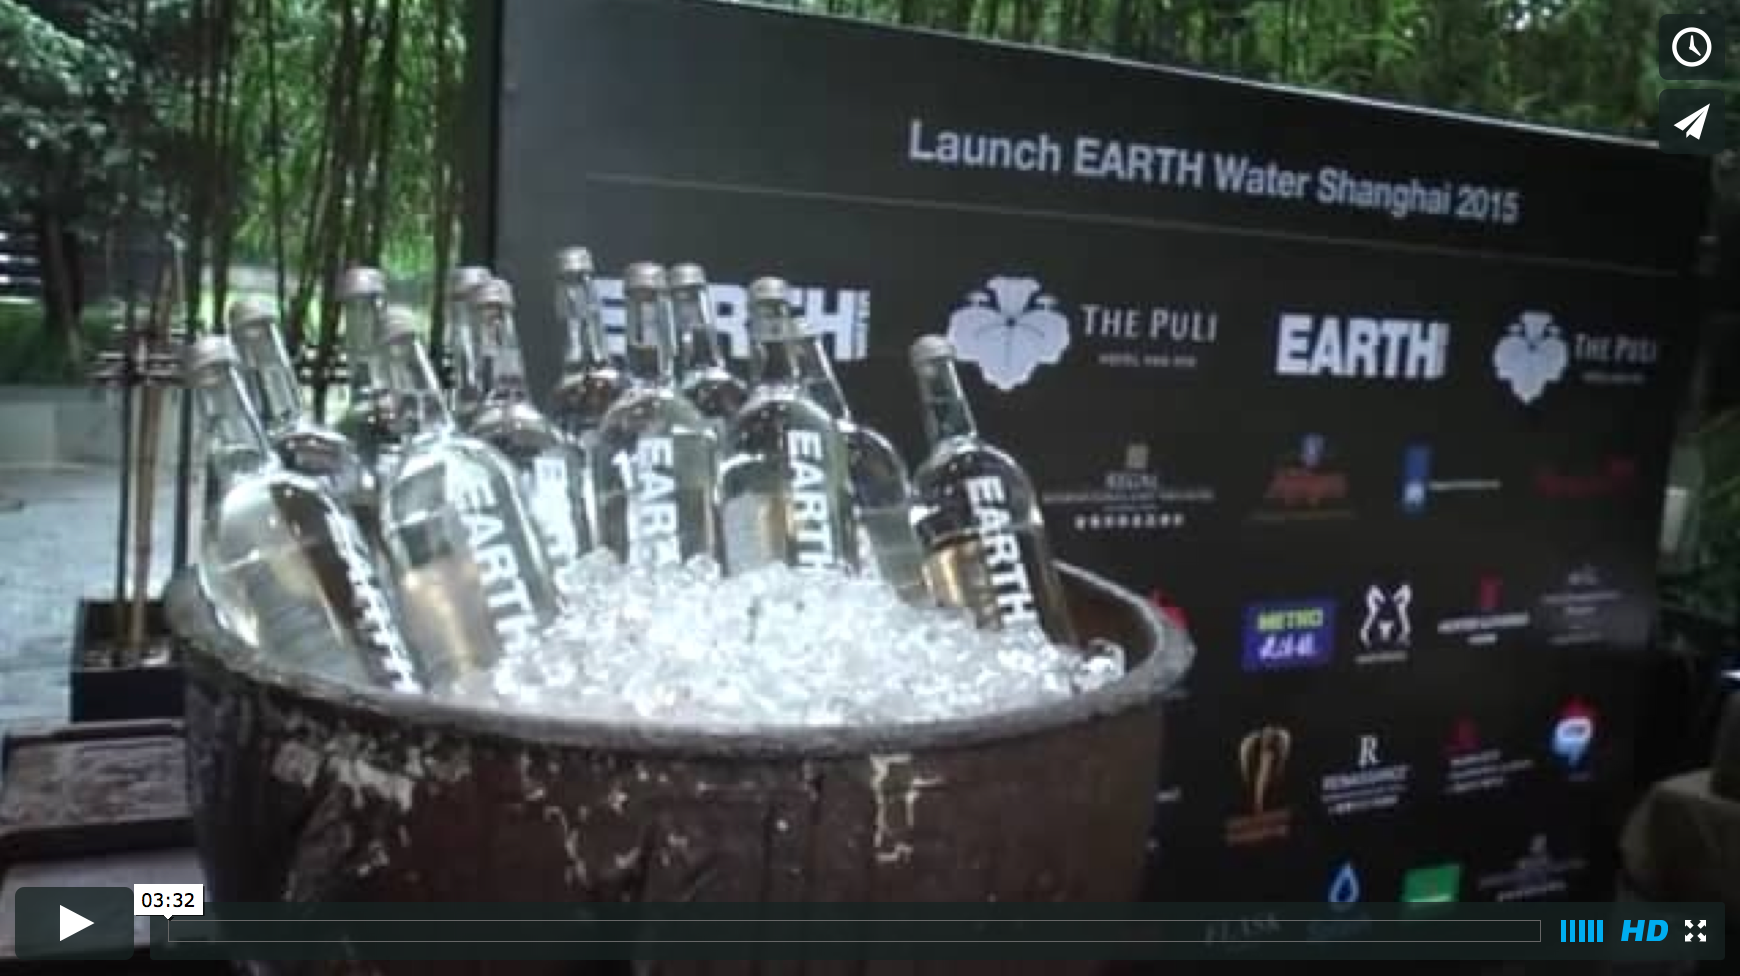 EARTH Water Shanghai lancering